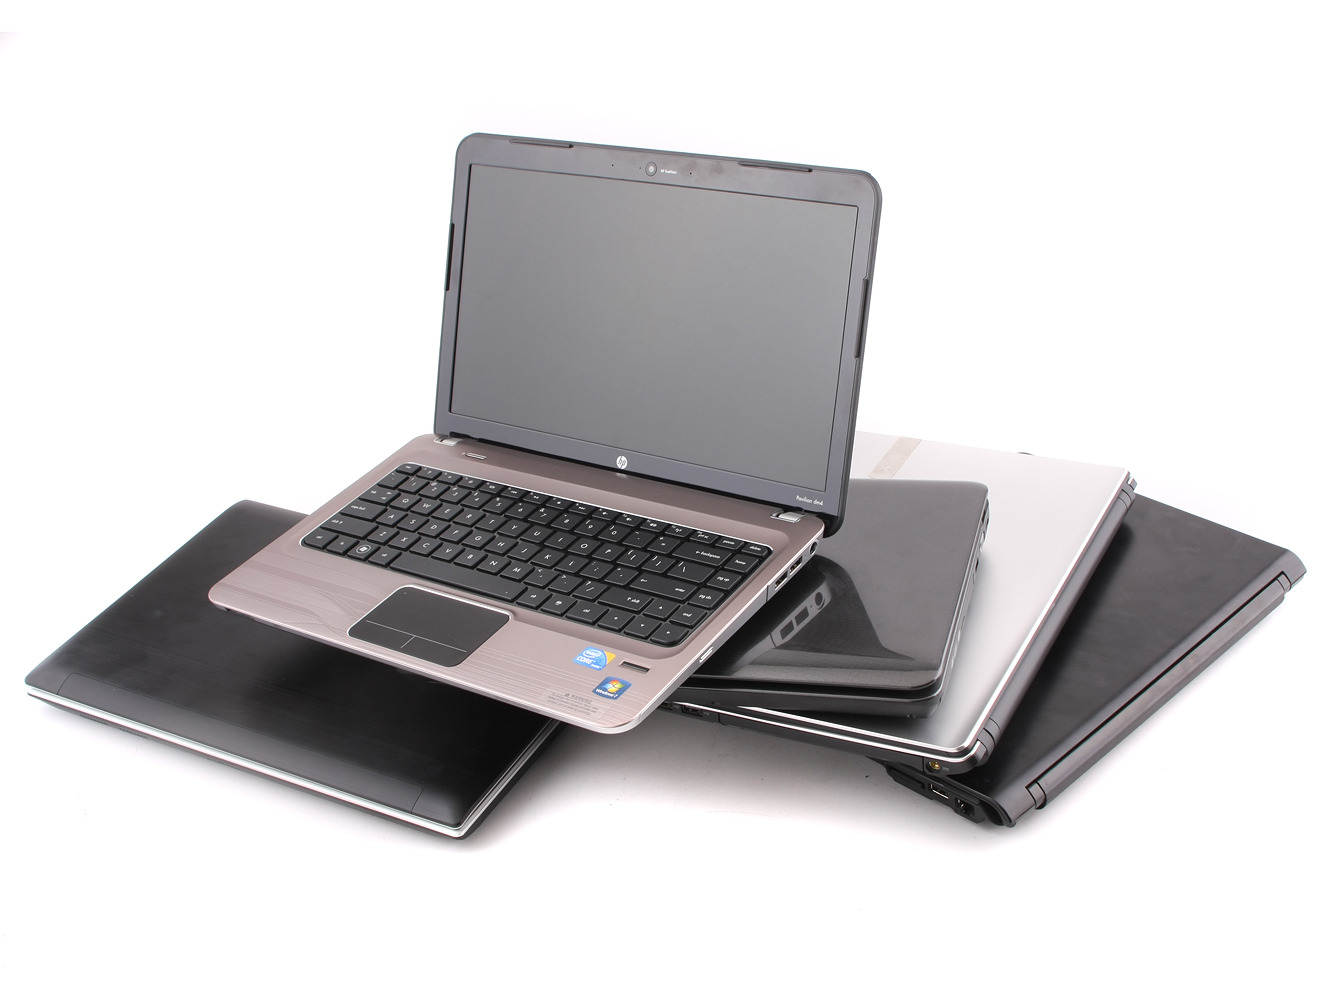 CNET's back-to-school 2010 retail laptop and desktop round-up is here!